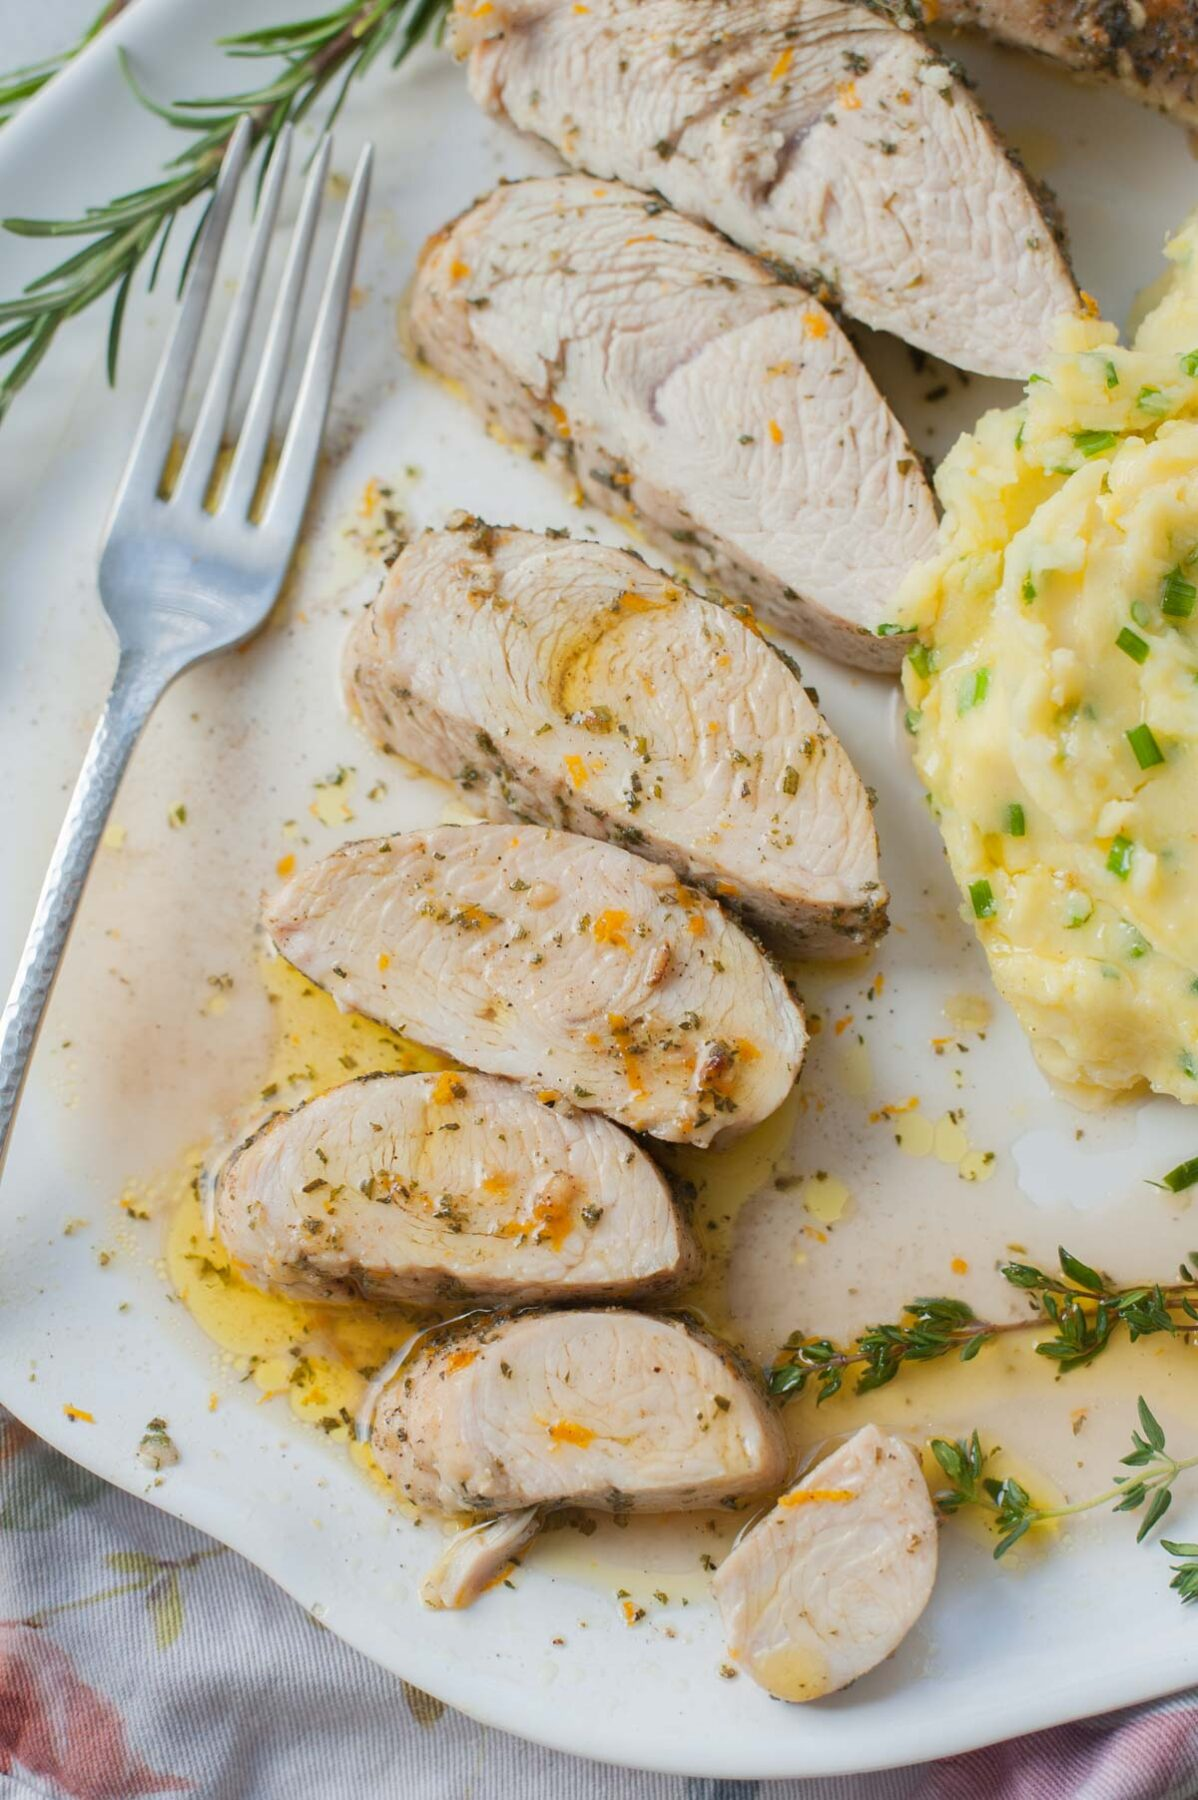 Slices of baked turkey tenderloin on a white plate. Mashed potatoes and fresh herbs on the side.